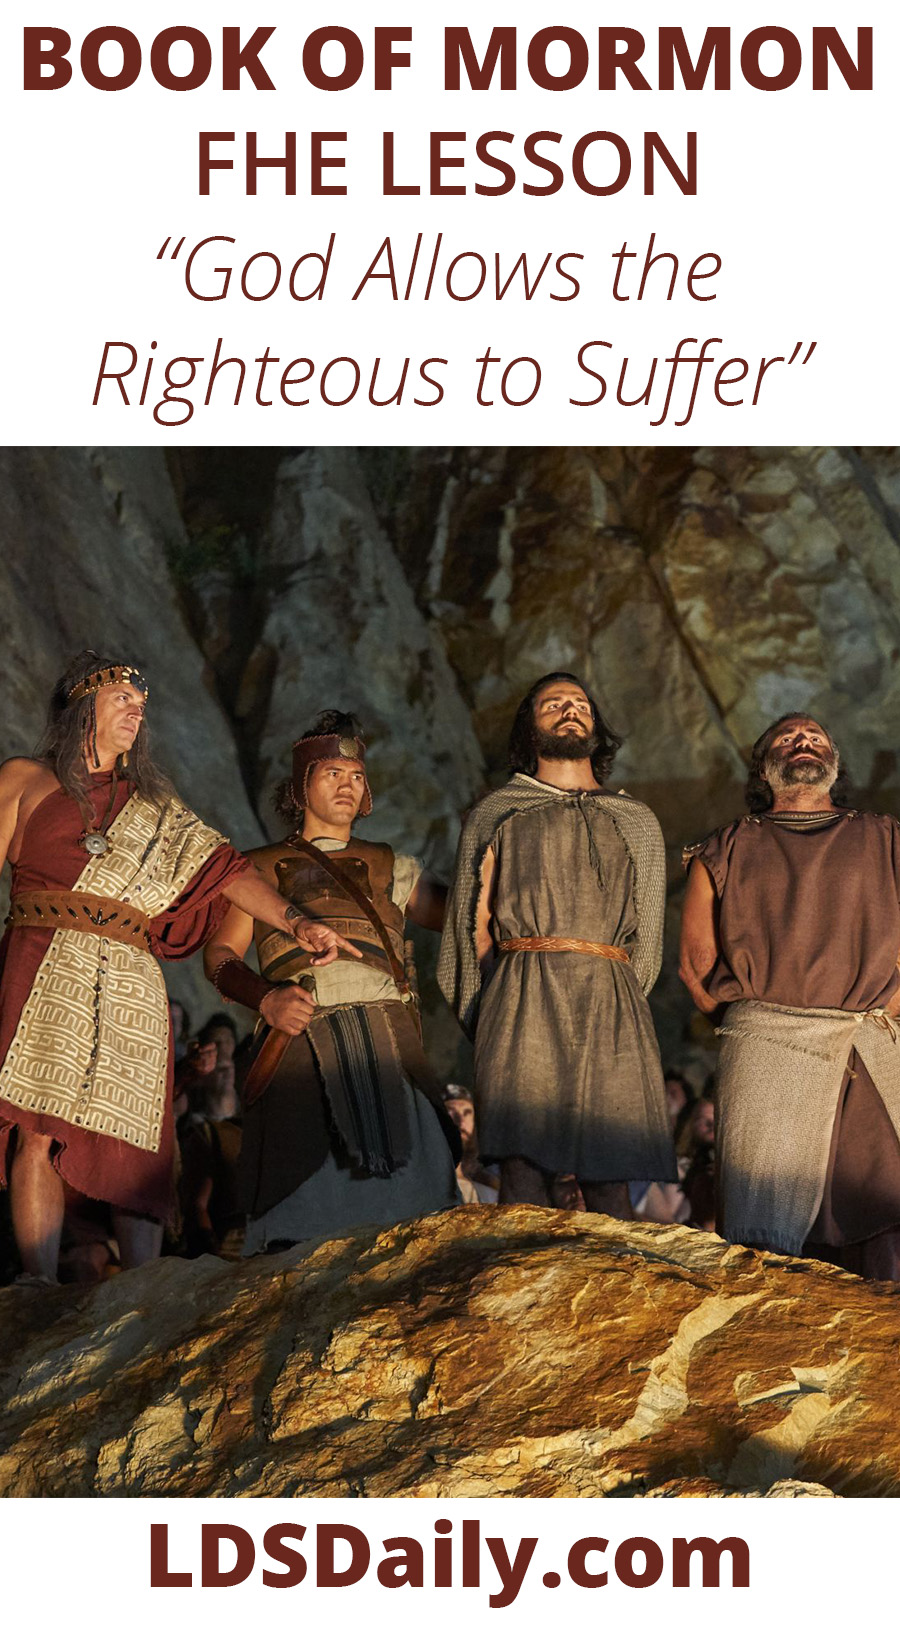 Book of Mormon FHE Lesson - God Allows the Righteous to Suffer PIN